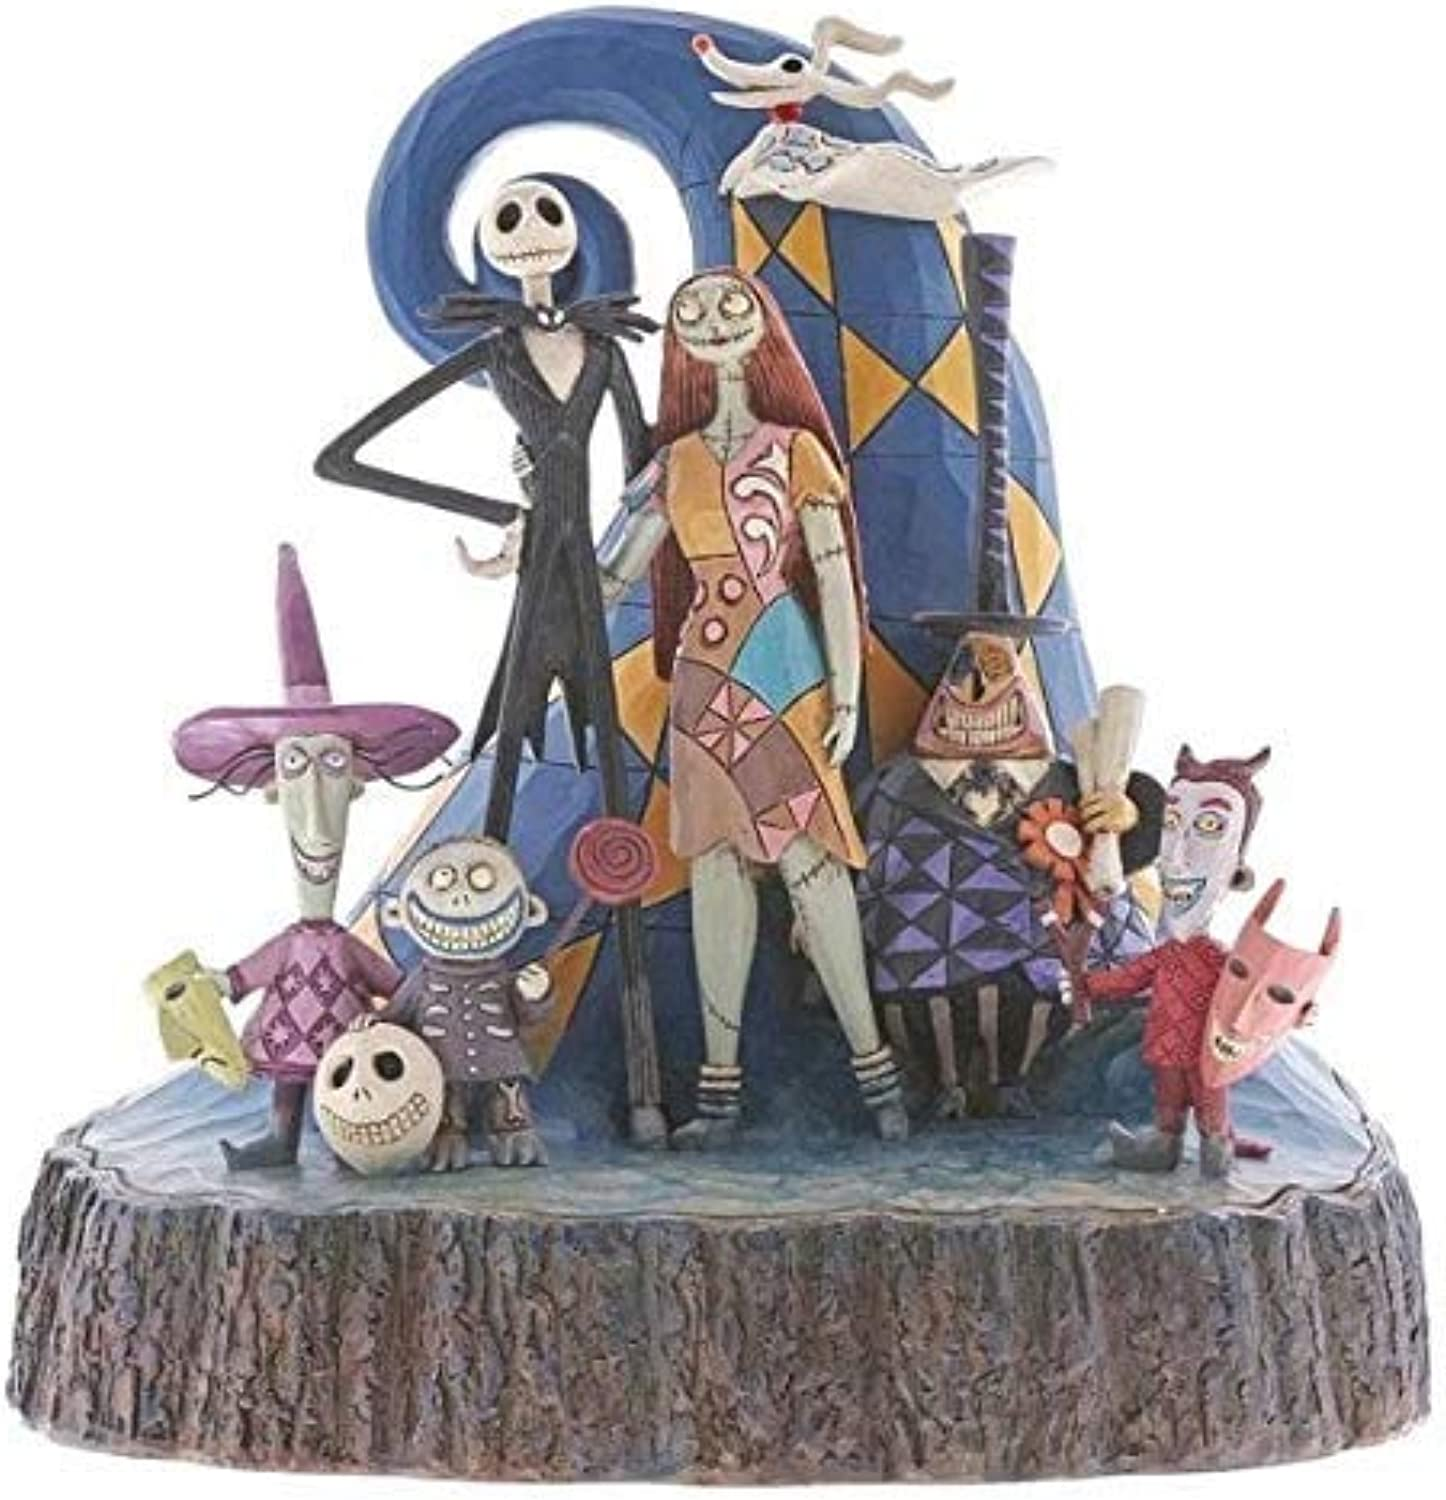 Enesco 6001287 Disney Traditions by Jim Shore Nightmare Before Christmas Carved by Heart Figurine 8  Multicolor